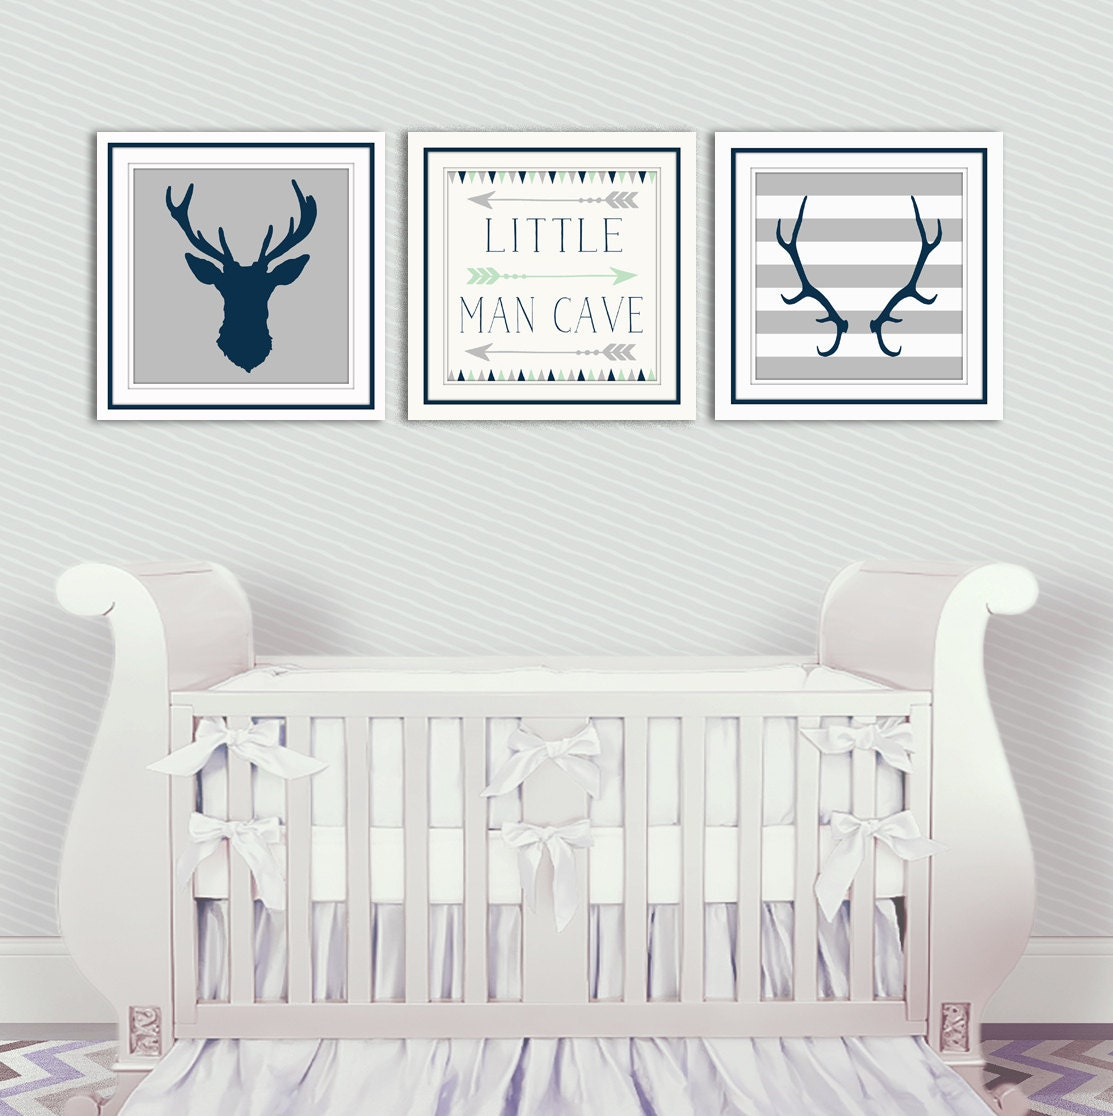 Man Cave Baby Room : Baby boy nursery decor antlers deer head arrows little